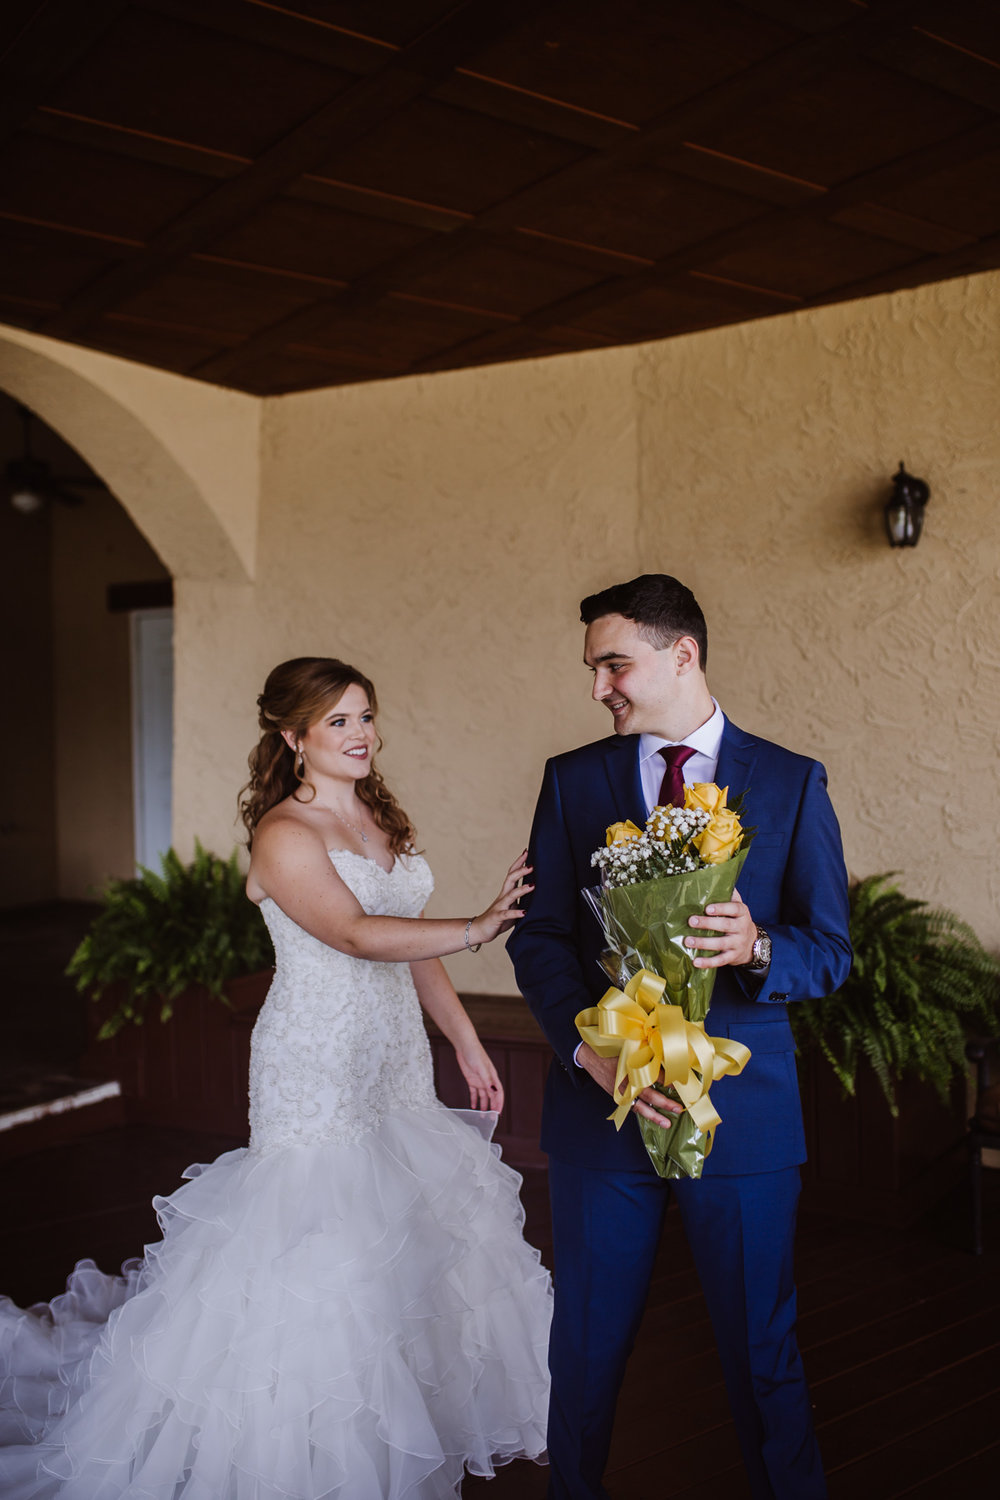 First Look photography, pro's and how to have one | Kayli LaFon Photography